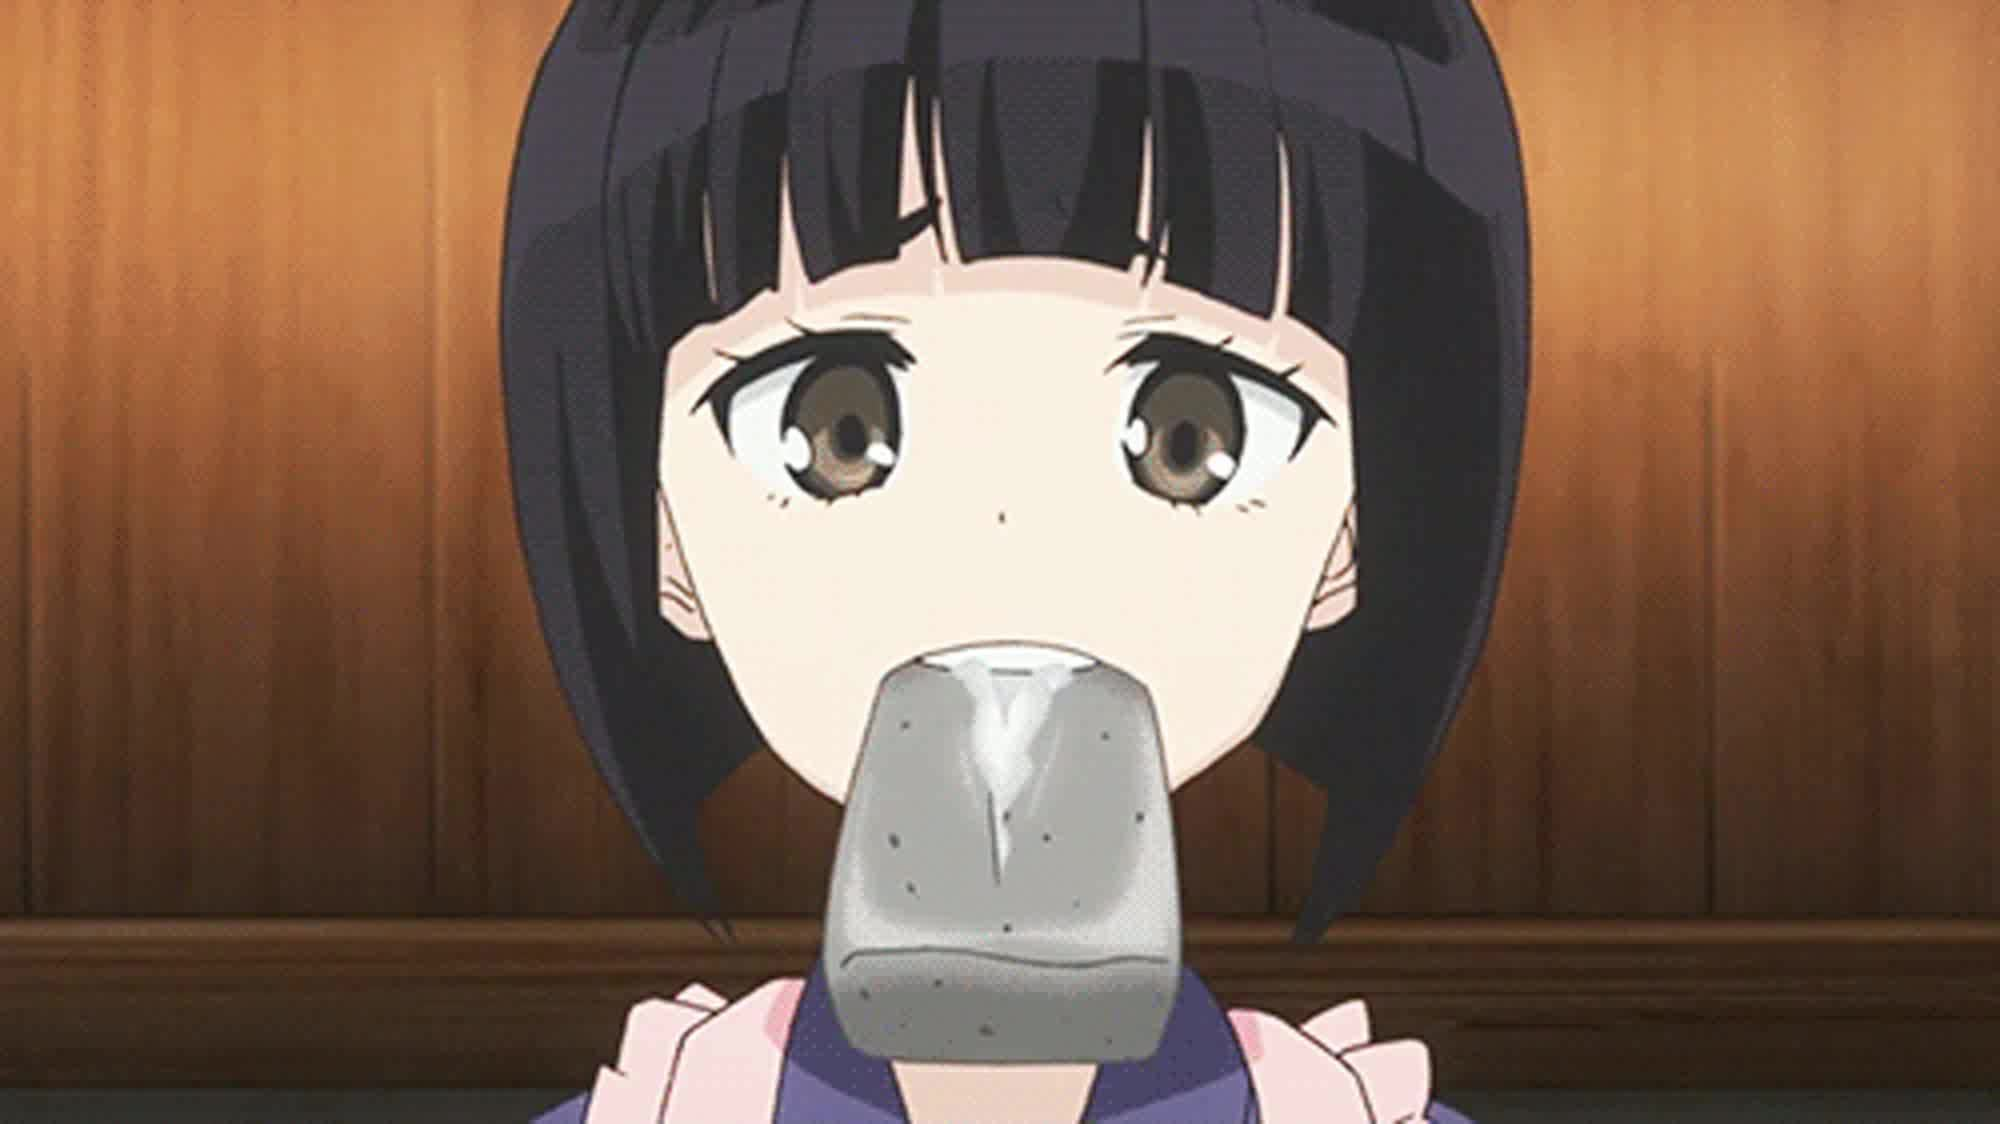 brokenanimegifs, Broken Shimoneta part 2 GIFs